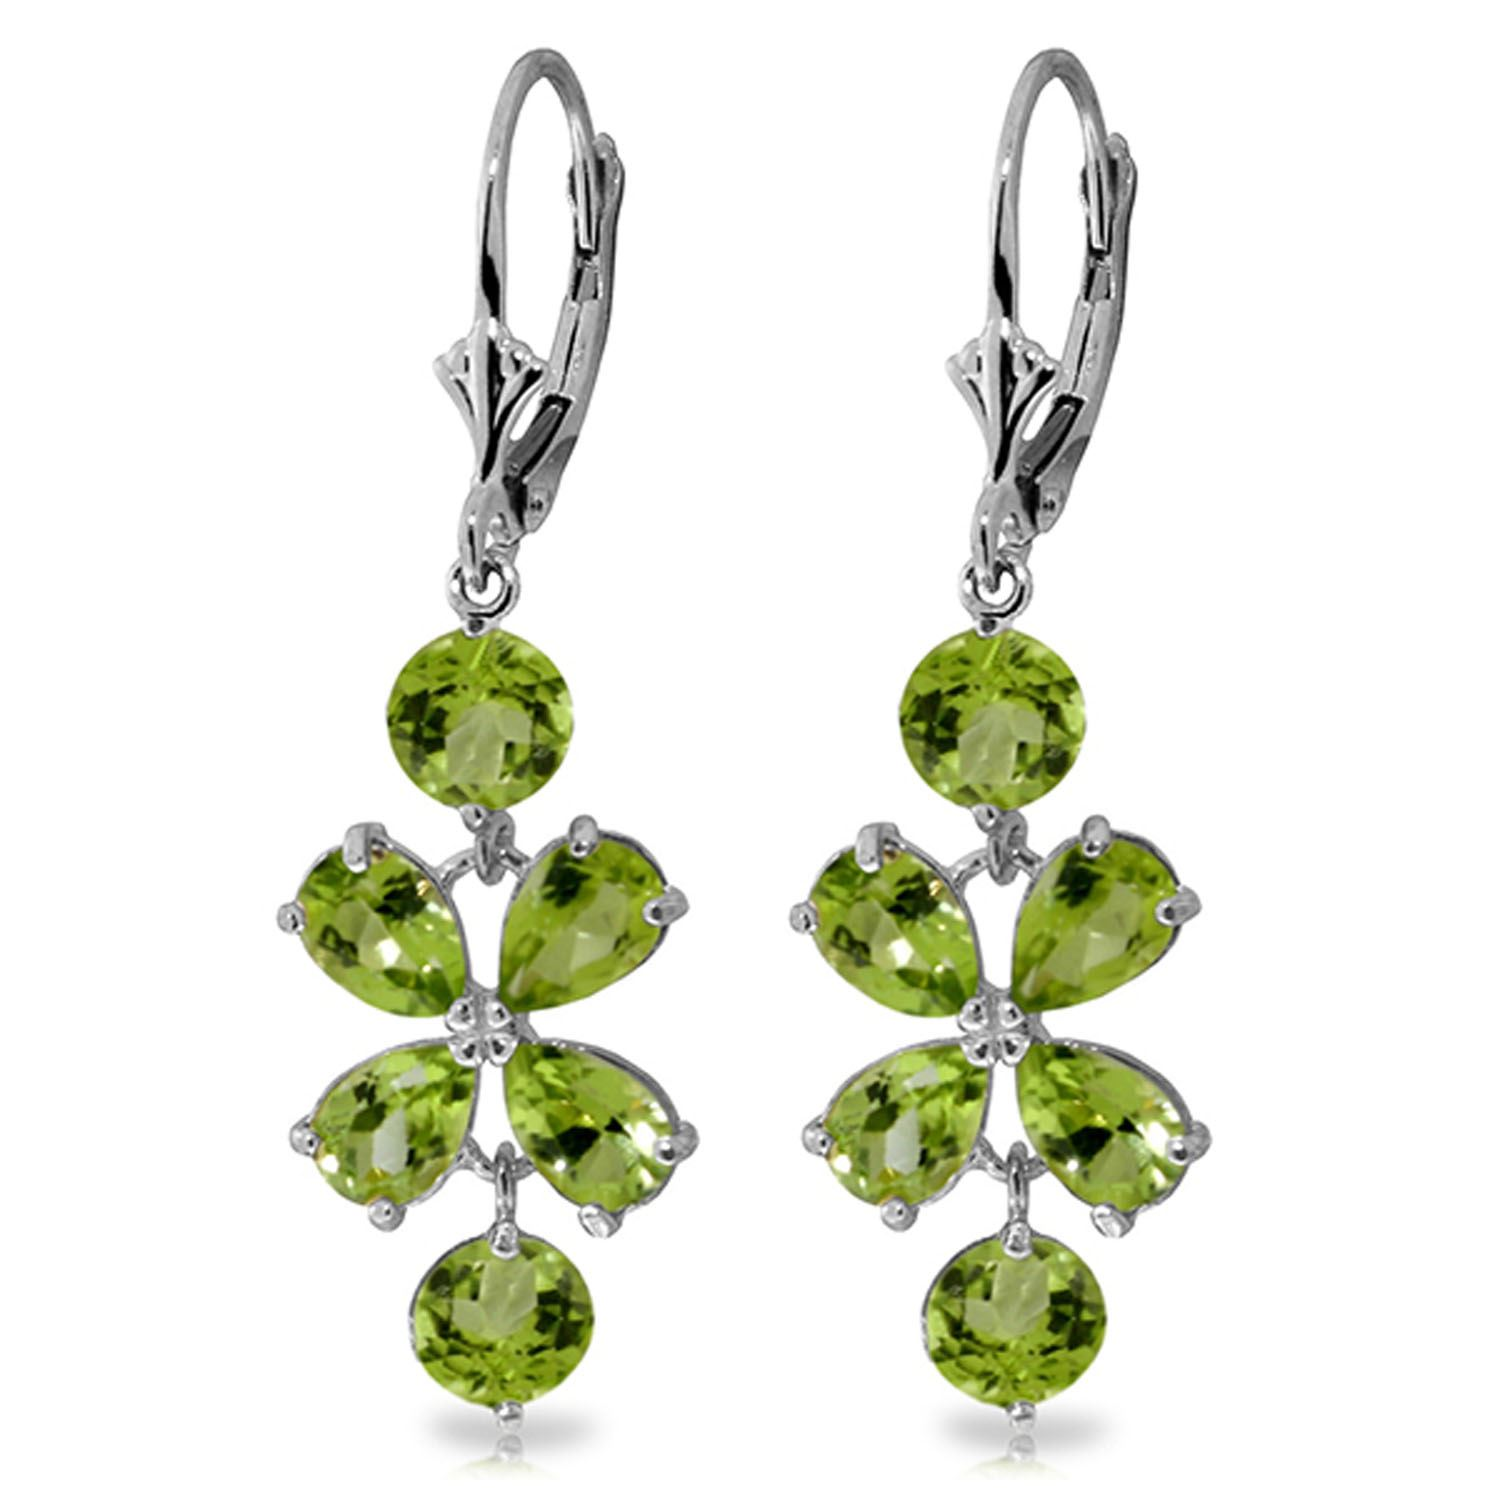 ebf2869d8 ALARRI 14K. White Gold Chandeliers Earring with Natural Peridots